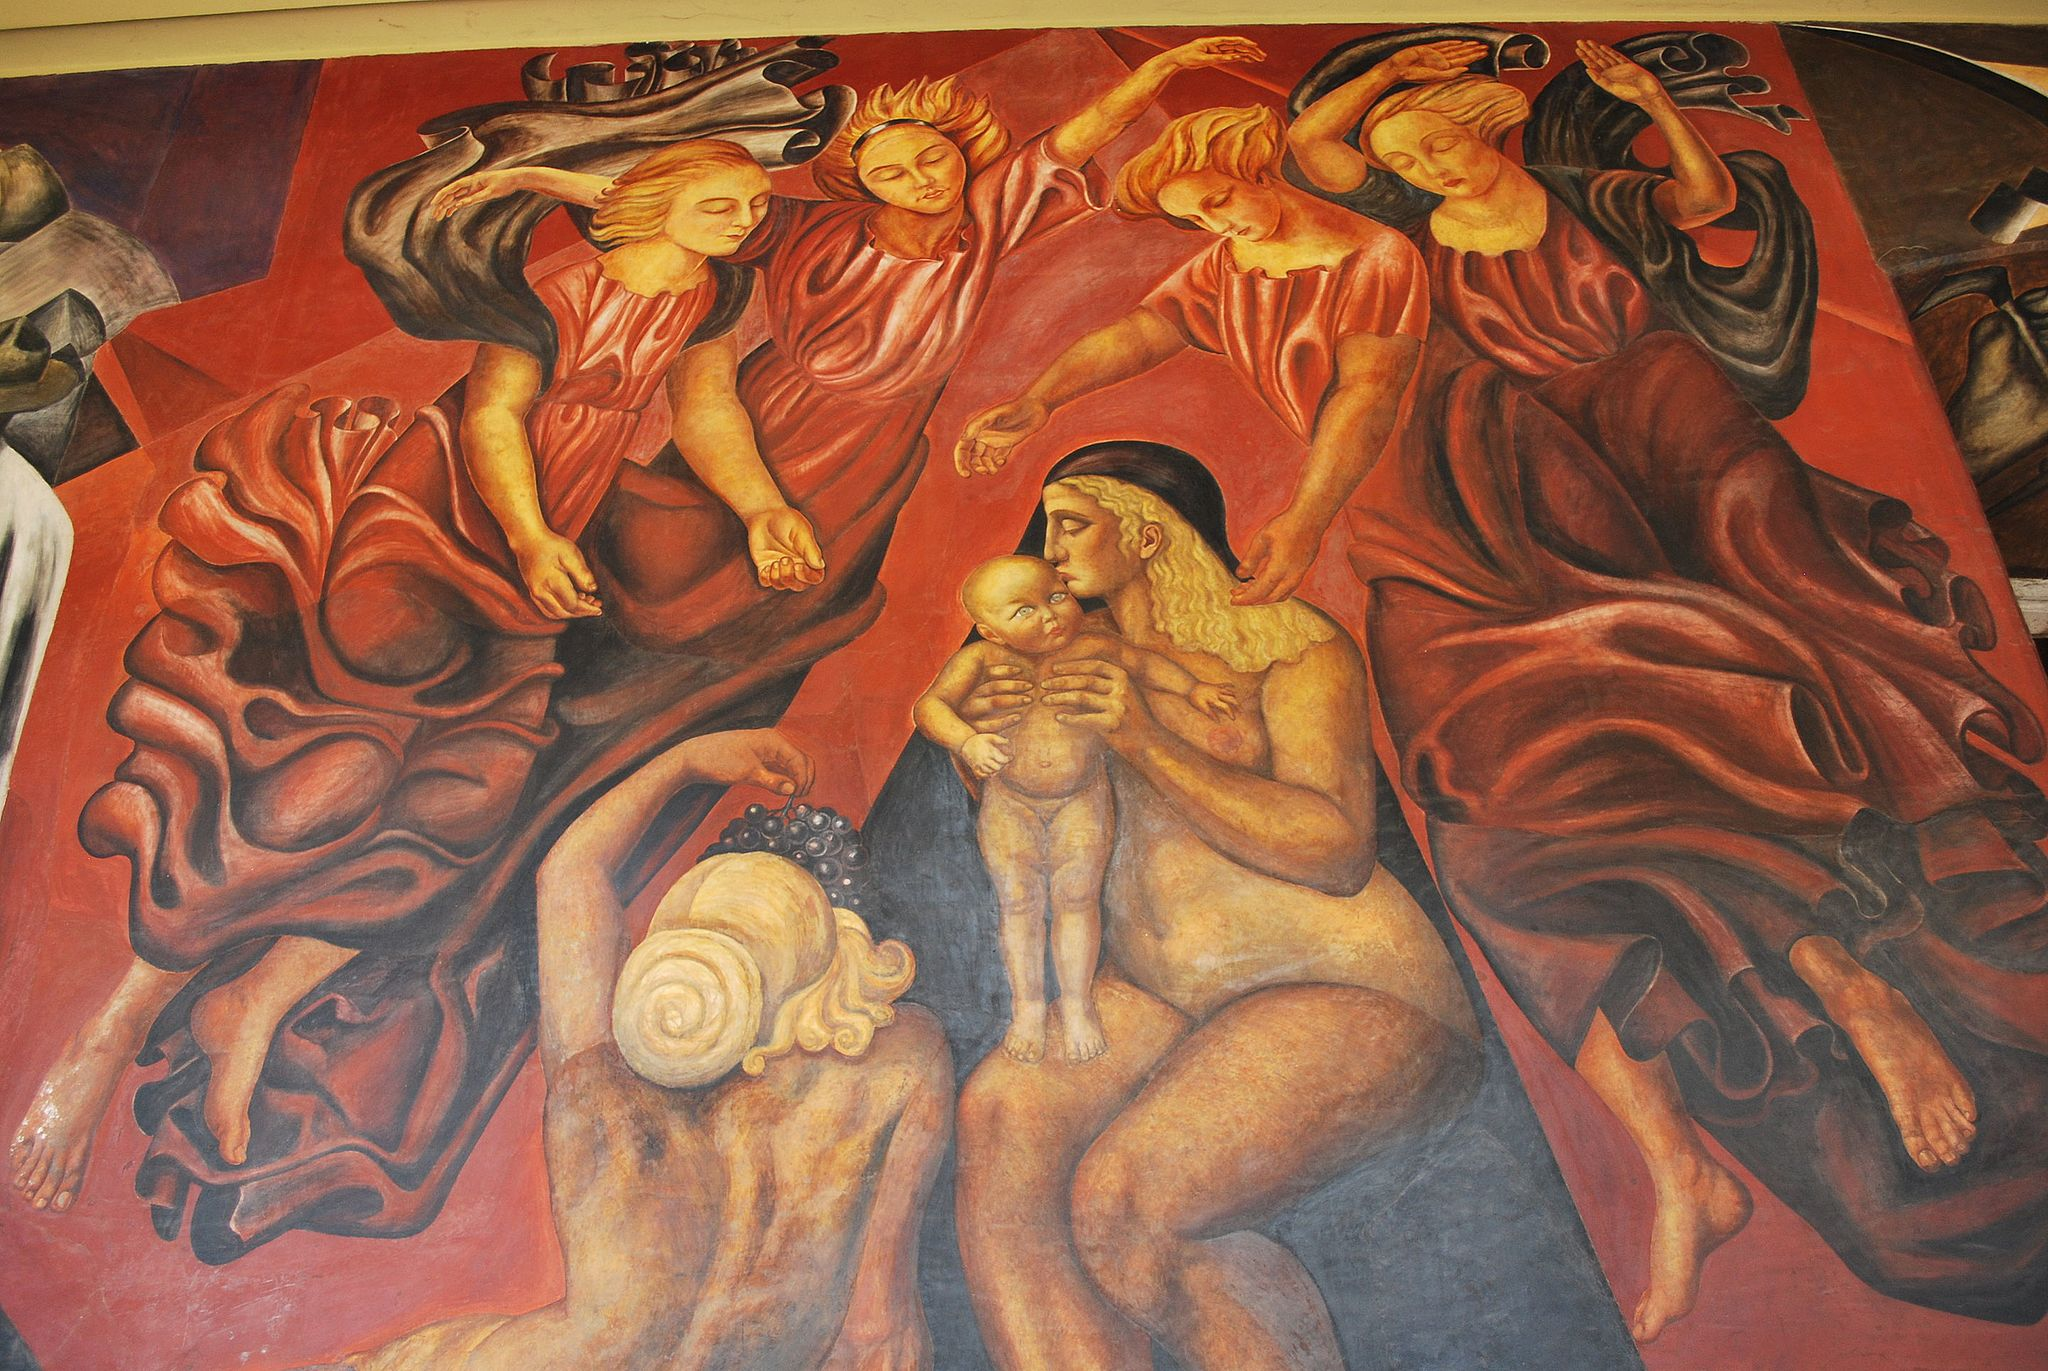 An introduction to mexican muralism in 10 iconic artworks for El hombre de fuego mural de jose clemente orozco